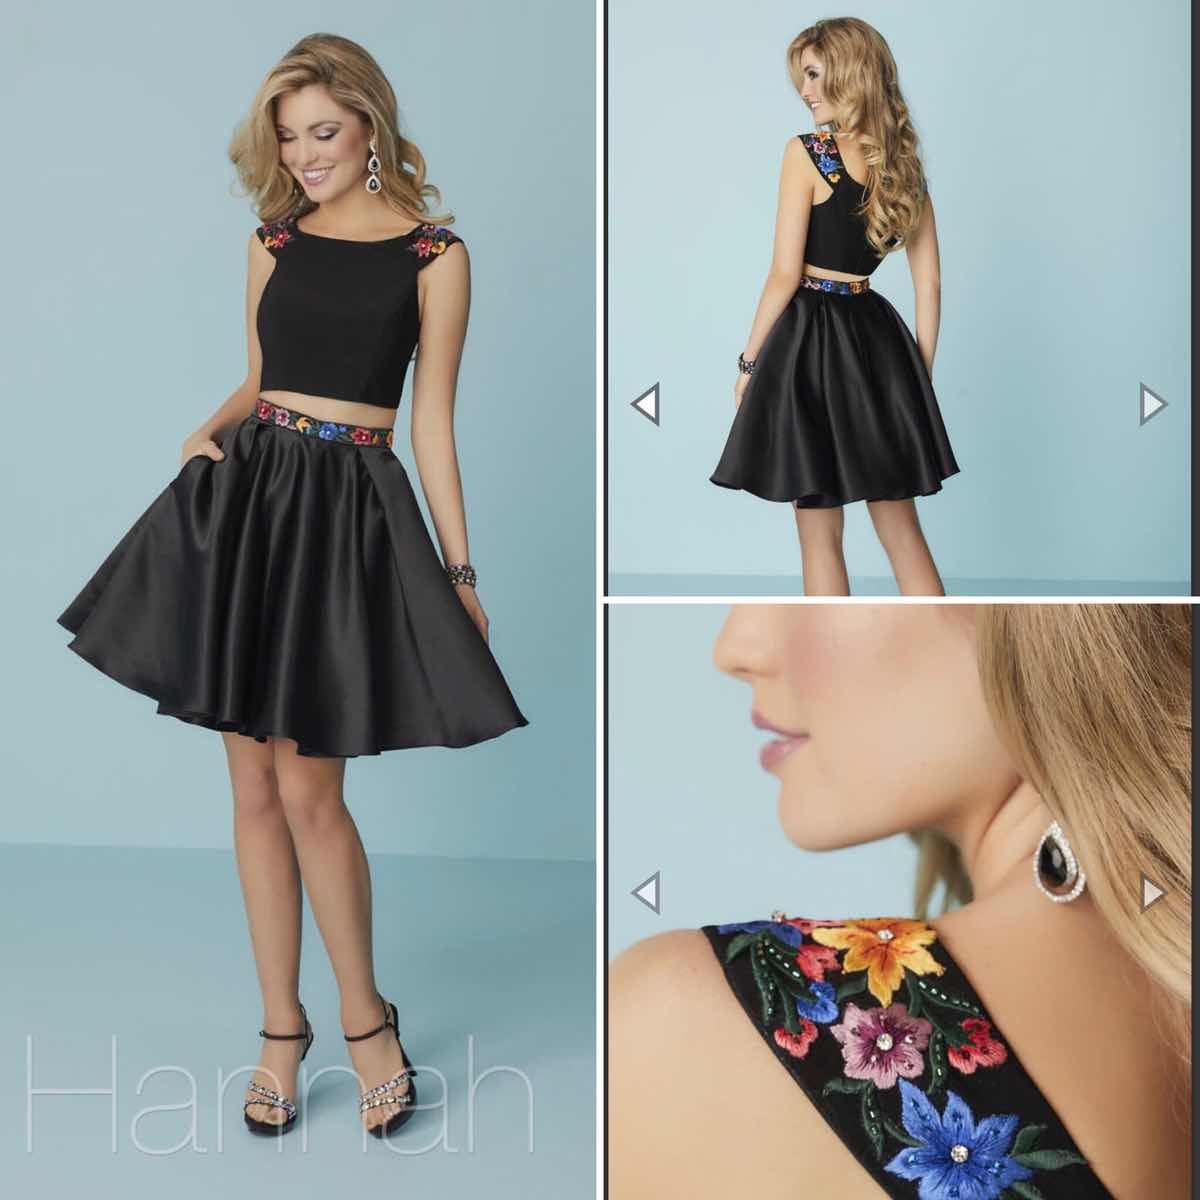 Hannah S Black Size 8 Homecoming Cocktail Dress on Queenly